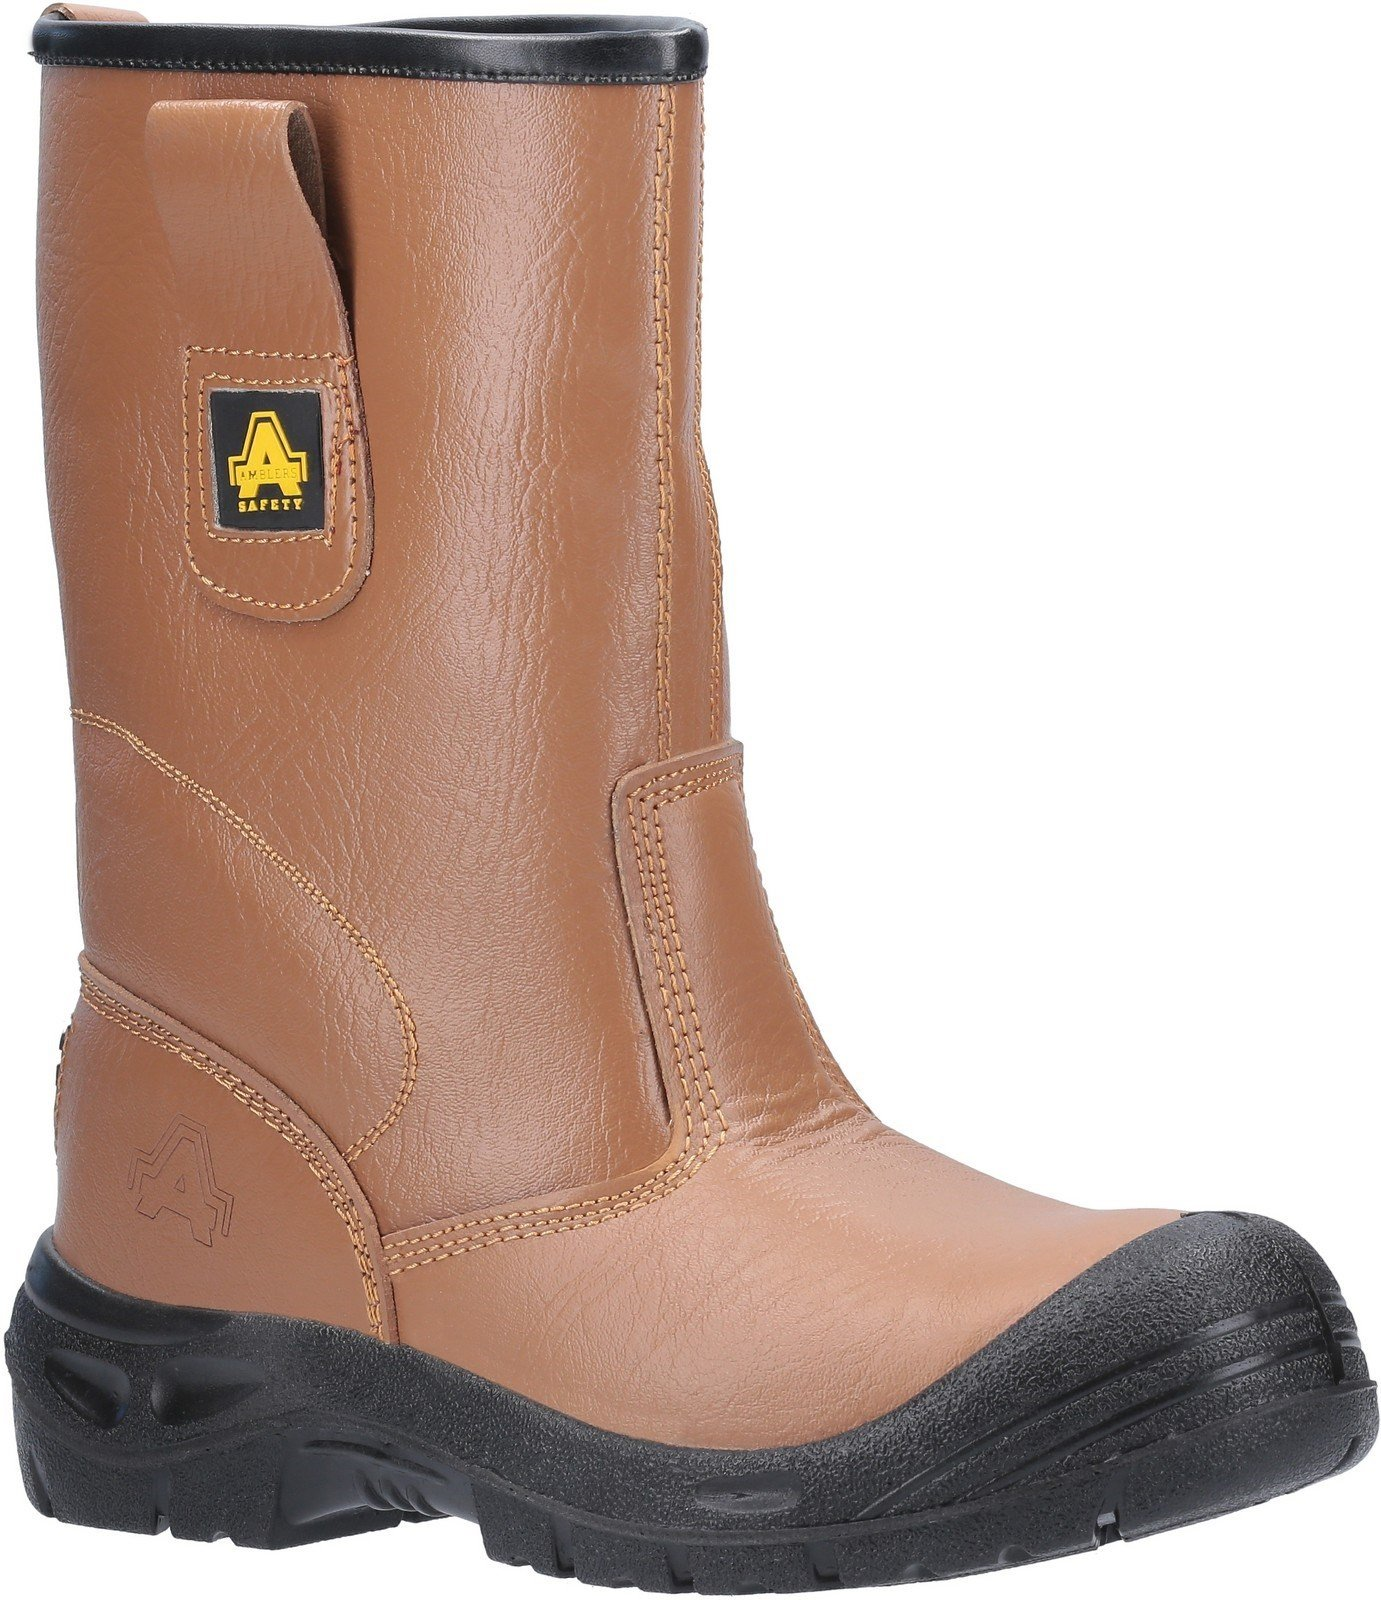 Amblers Unisex Safety Water Resistant Pull On Rigger Boot Tan 20427 - Tan 3